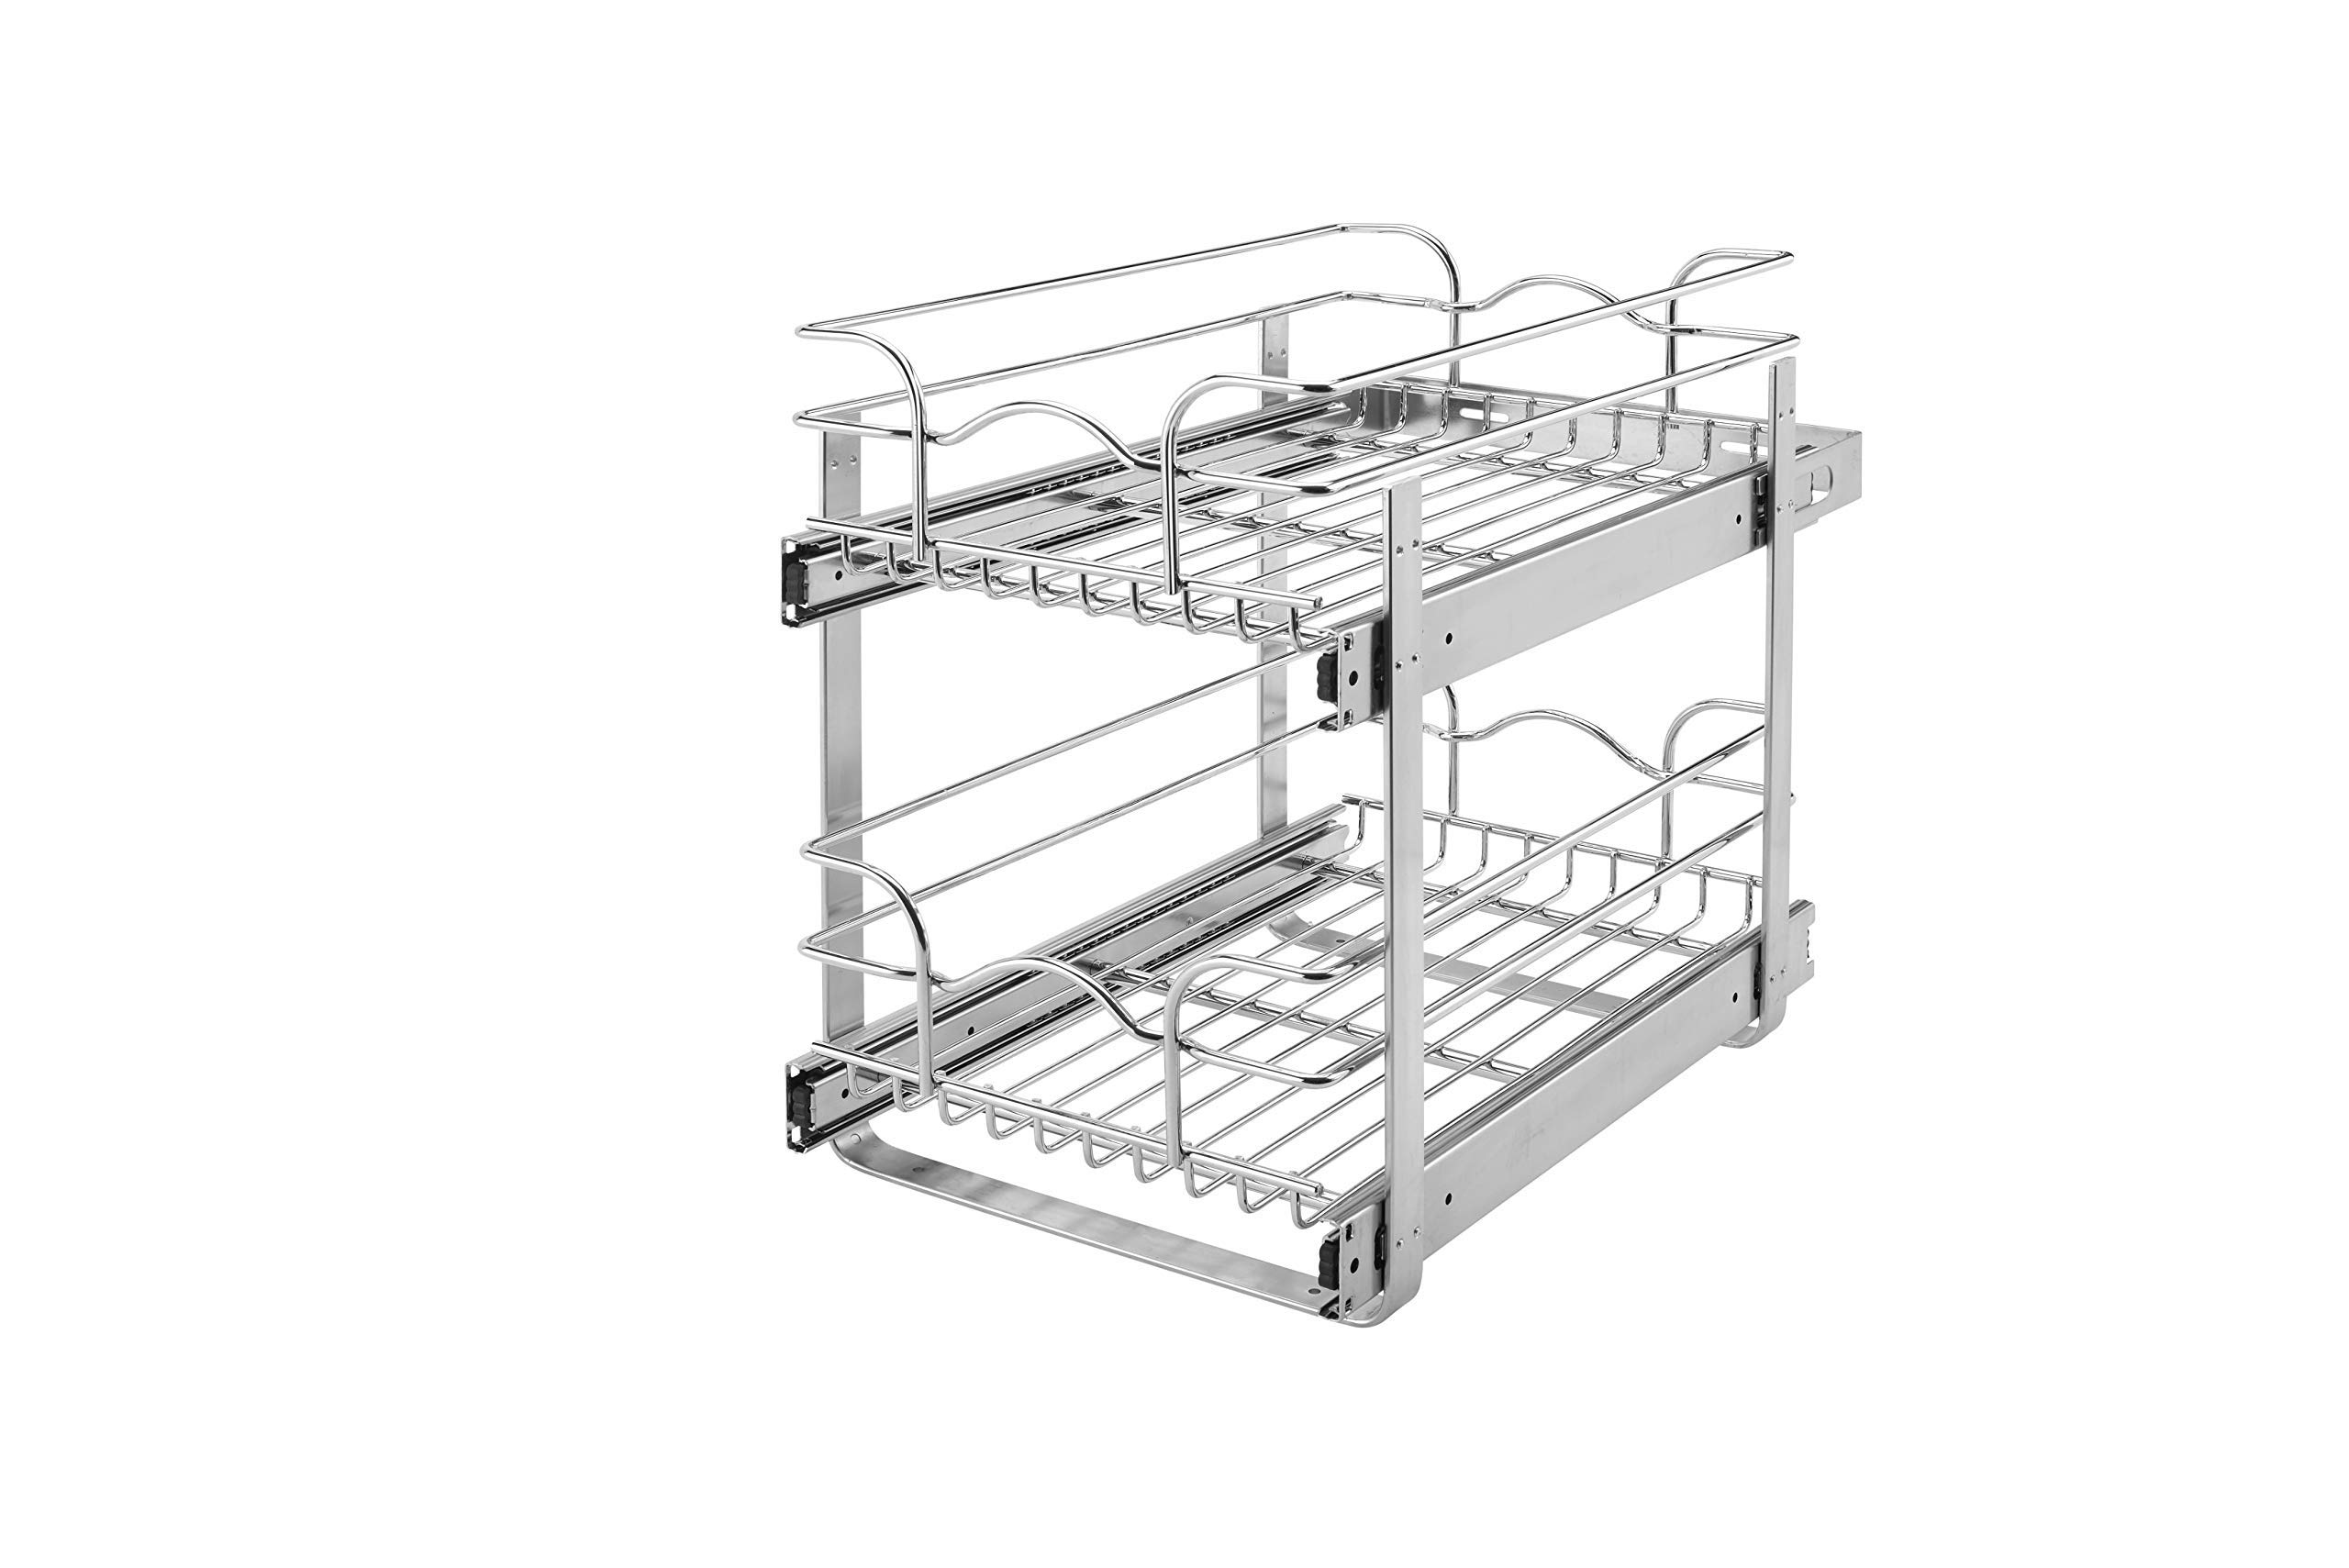 Rev-A-Shelf - 5WB2-1218-CR - 12 in. W x 18 in. D Base Cabinet Pull-Out Chrome 2-Tier Wire Basket (Renewed) by Rev-A-Shelf